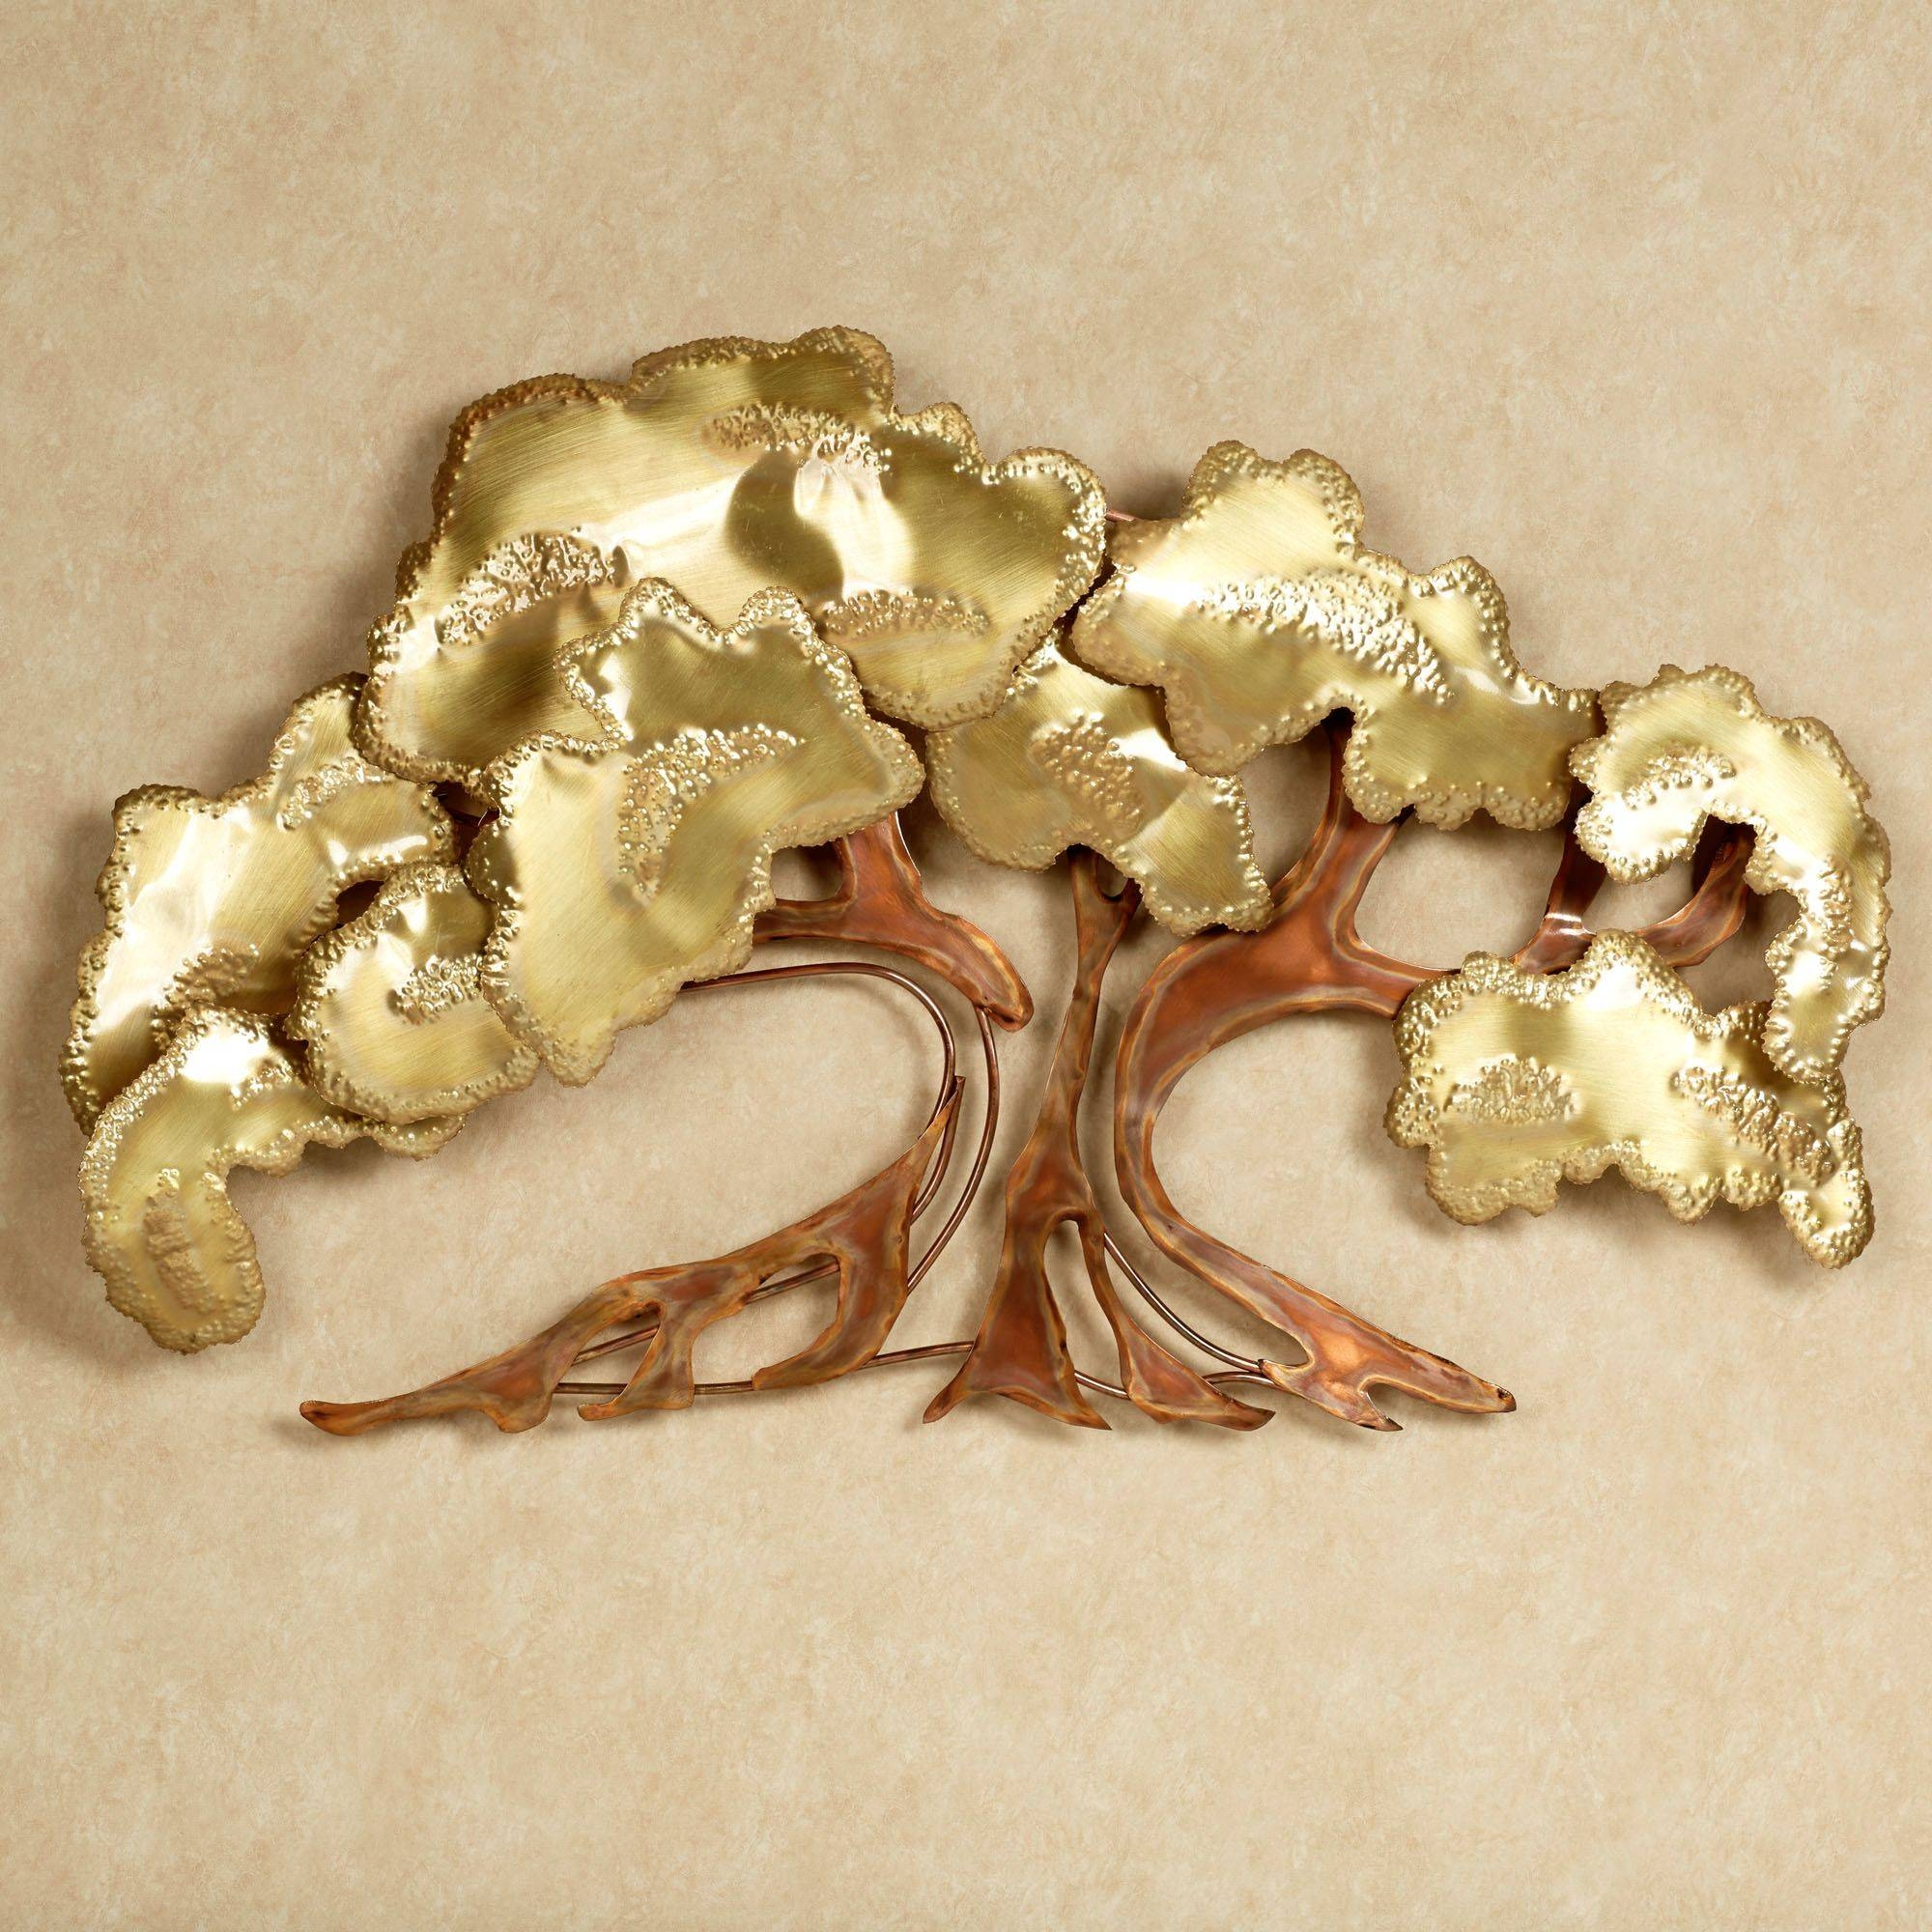 Unique Tree Of Life Metal Wall Art Decor Sculpture Desaign With Pertaining To Recent Unique Metal Wall Art (View 11 of 20)